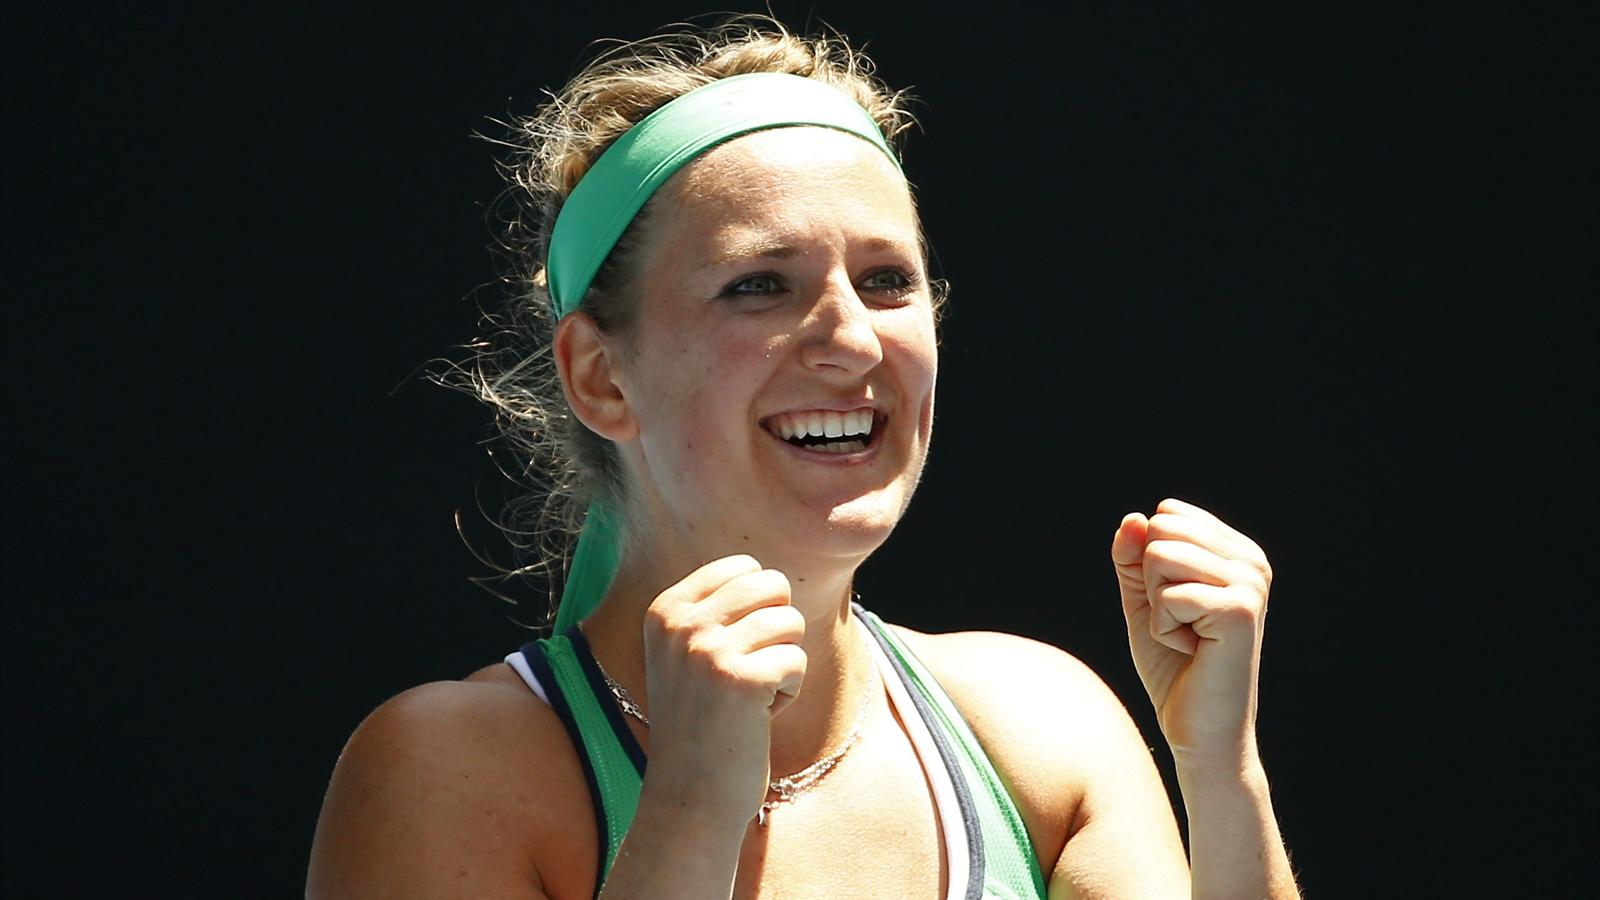 Belarus' Victoria Azarenka celebrates after winning her fourth round match against Czech Republic's Barbora Strycova at the Australian Open